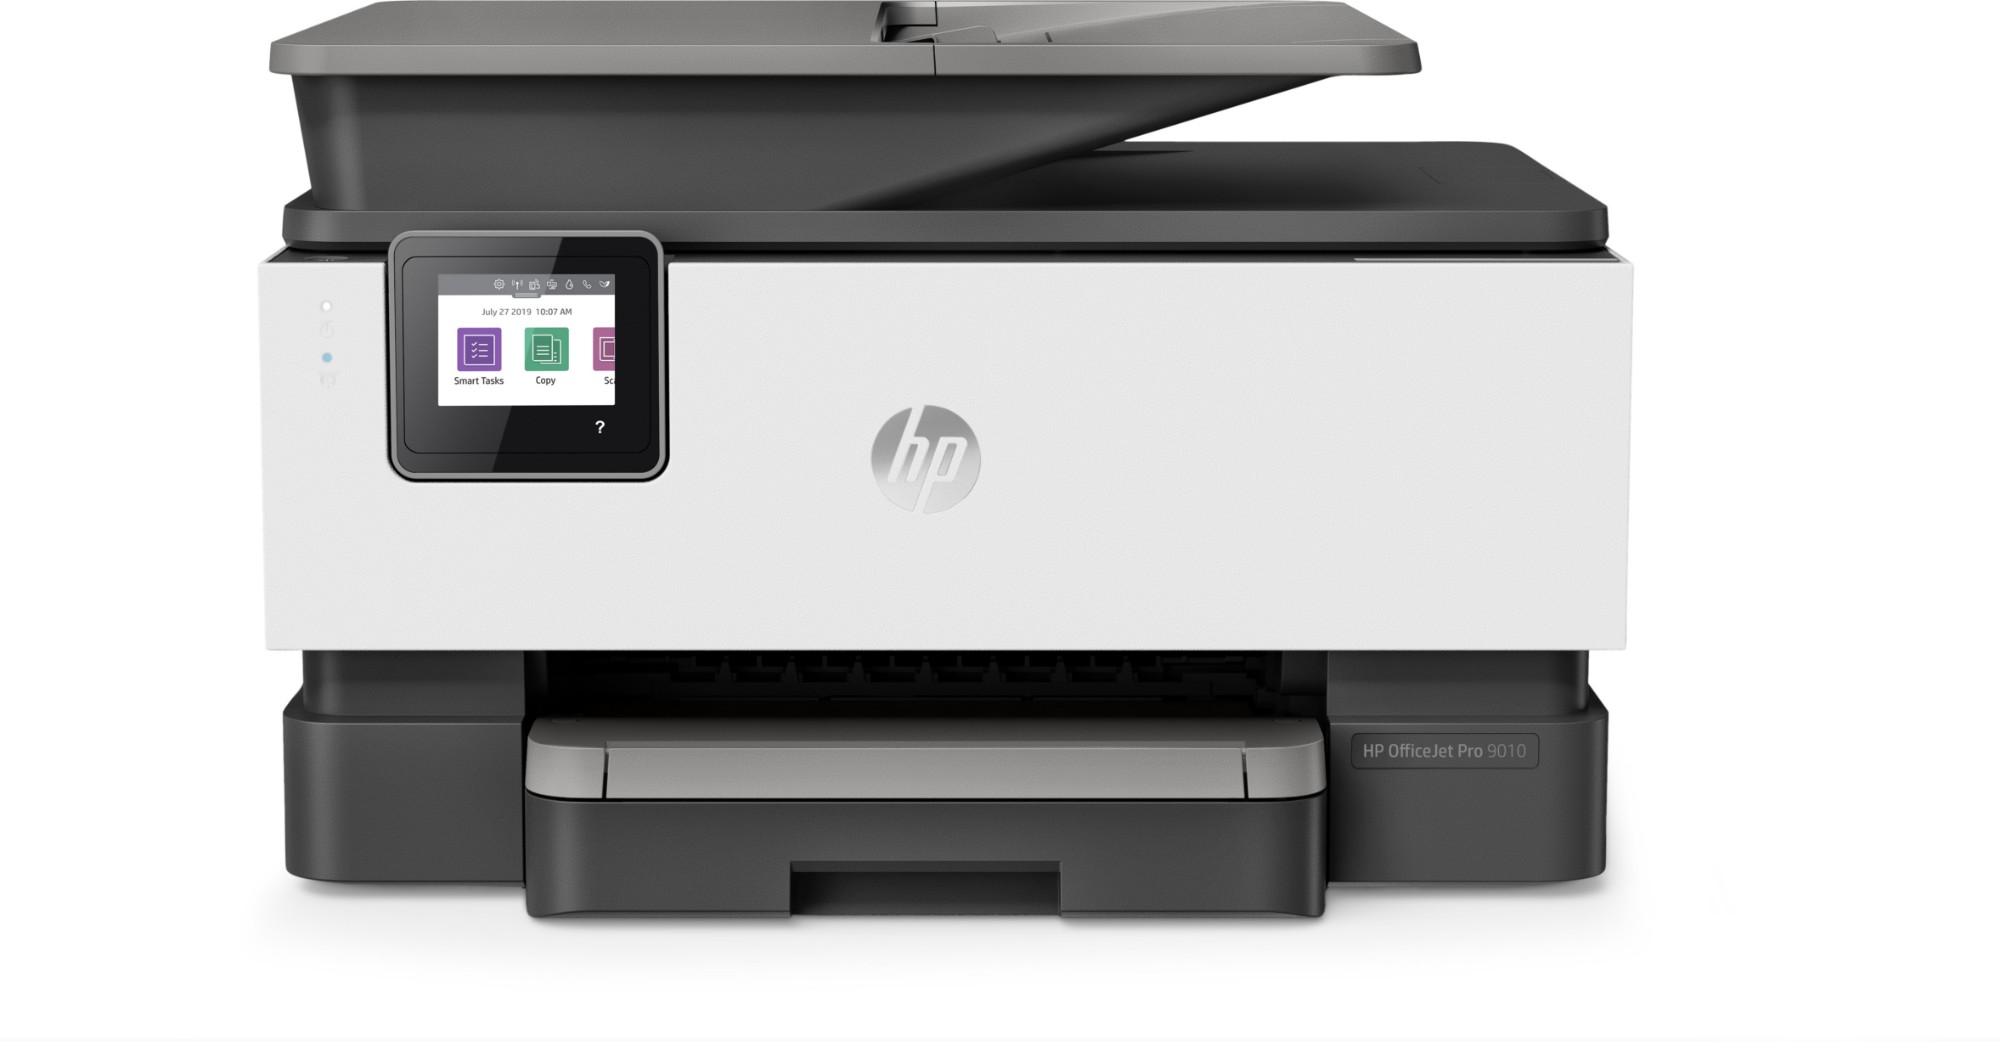 HP OfficeJet Pro 9010 All-in-one wireless printer Print,Scan,Copy from your phone, voice activated (works with Alexa and Google Assistant)